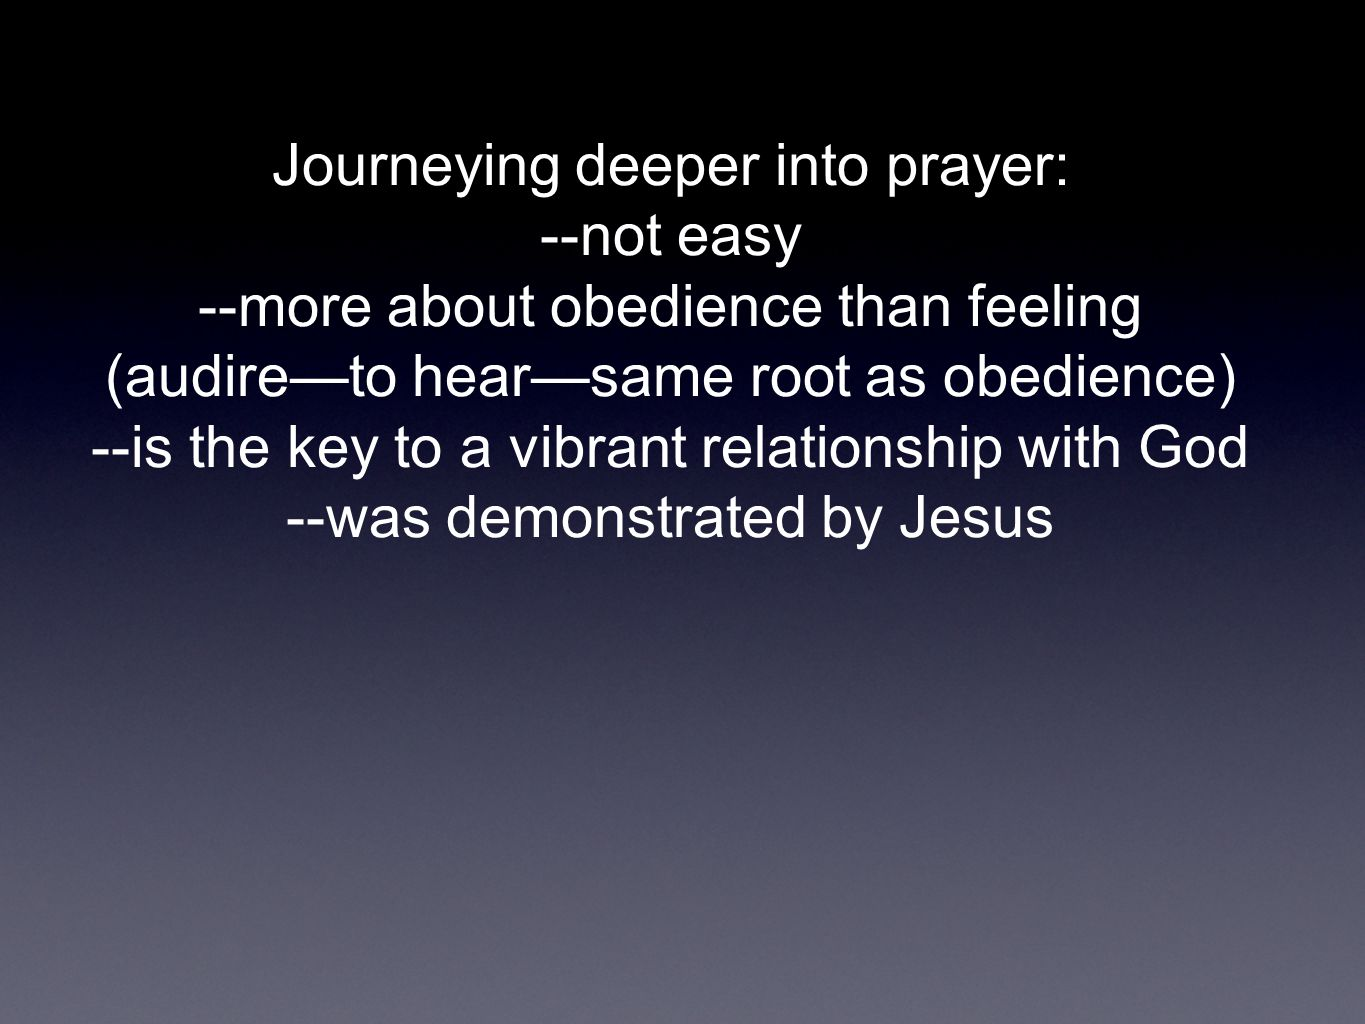 Journeying deeper into prayer: --not easy --more about obedience than feeling (audire—to hear—same root as obedience) --is the key to a vibrant relati